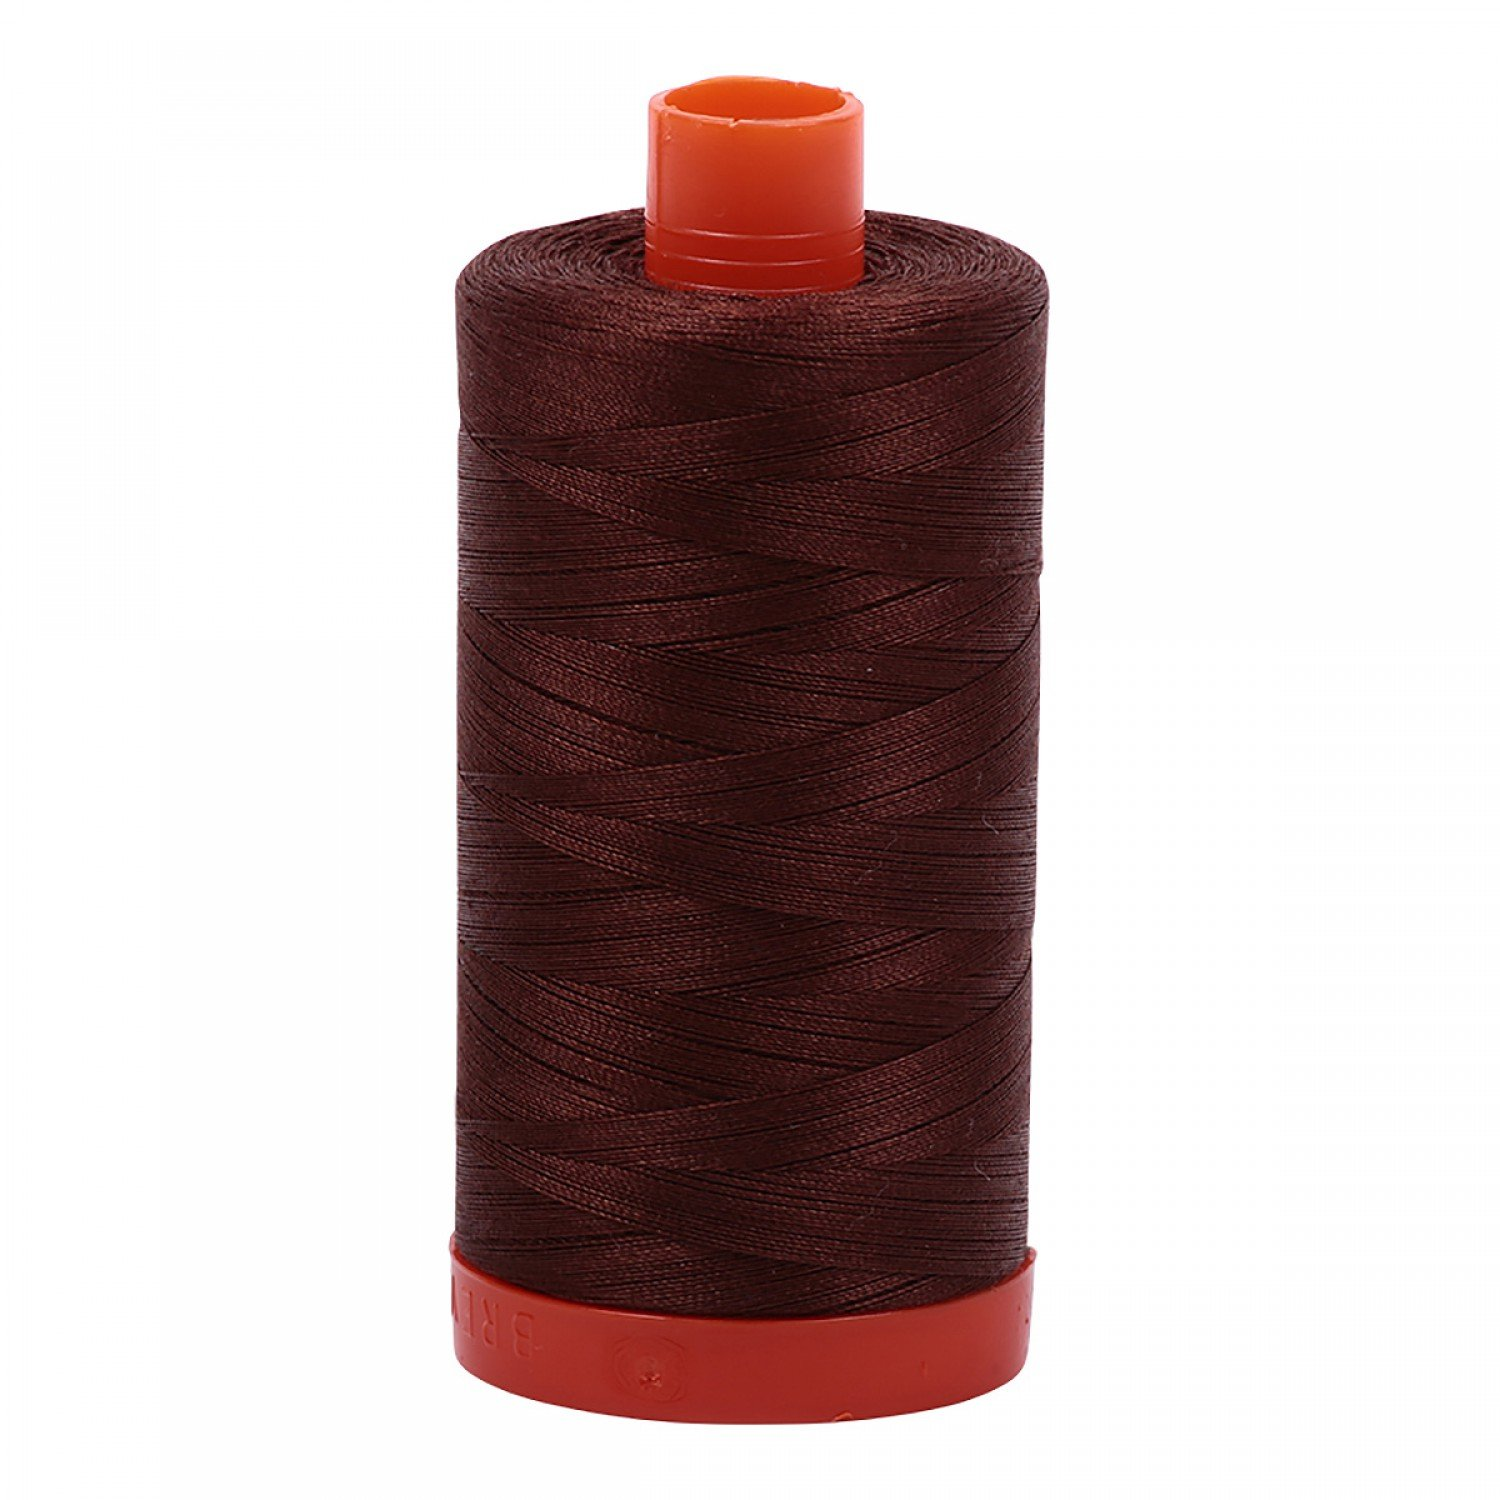 Aurifil Mako Cotton Thread 12 wt 356 yds 2360 Chocolate